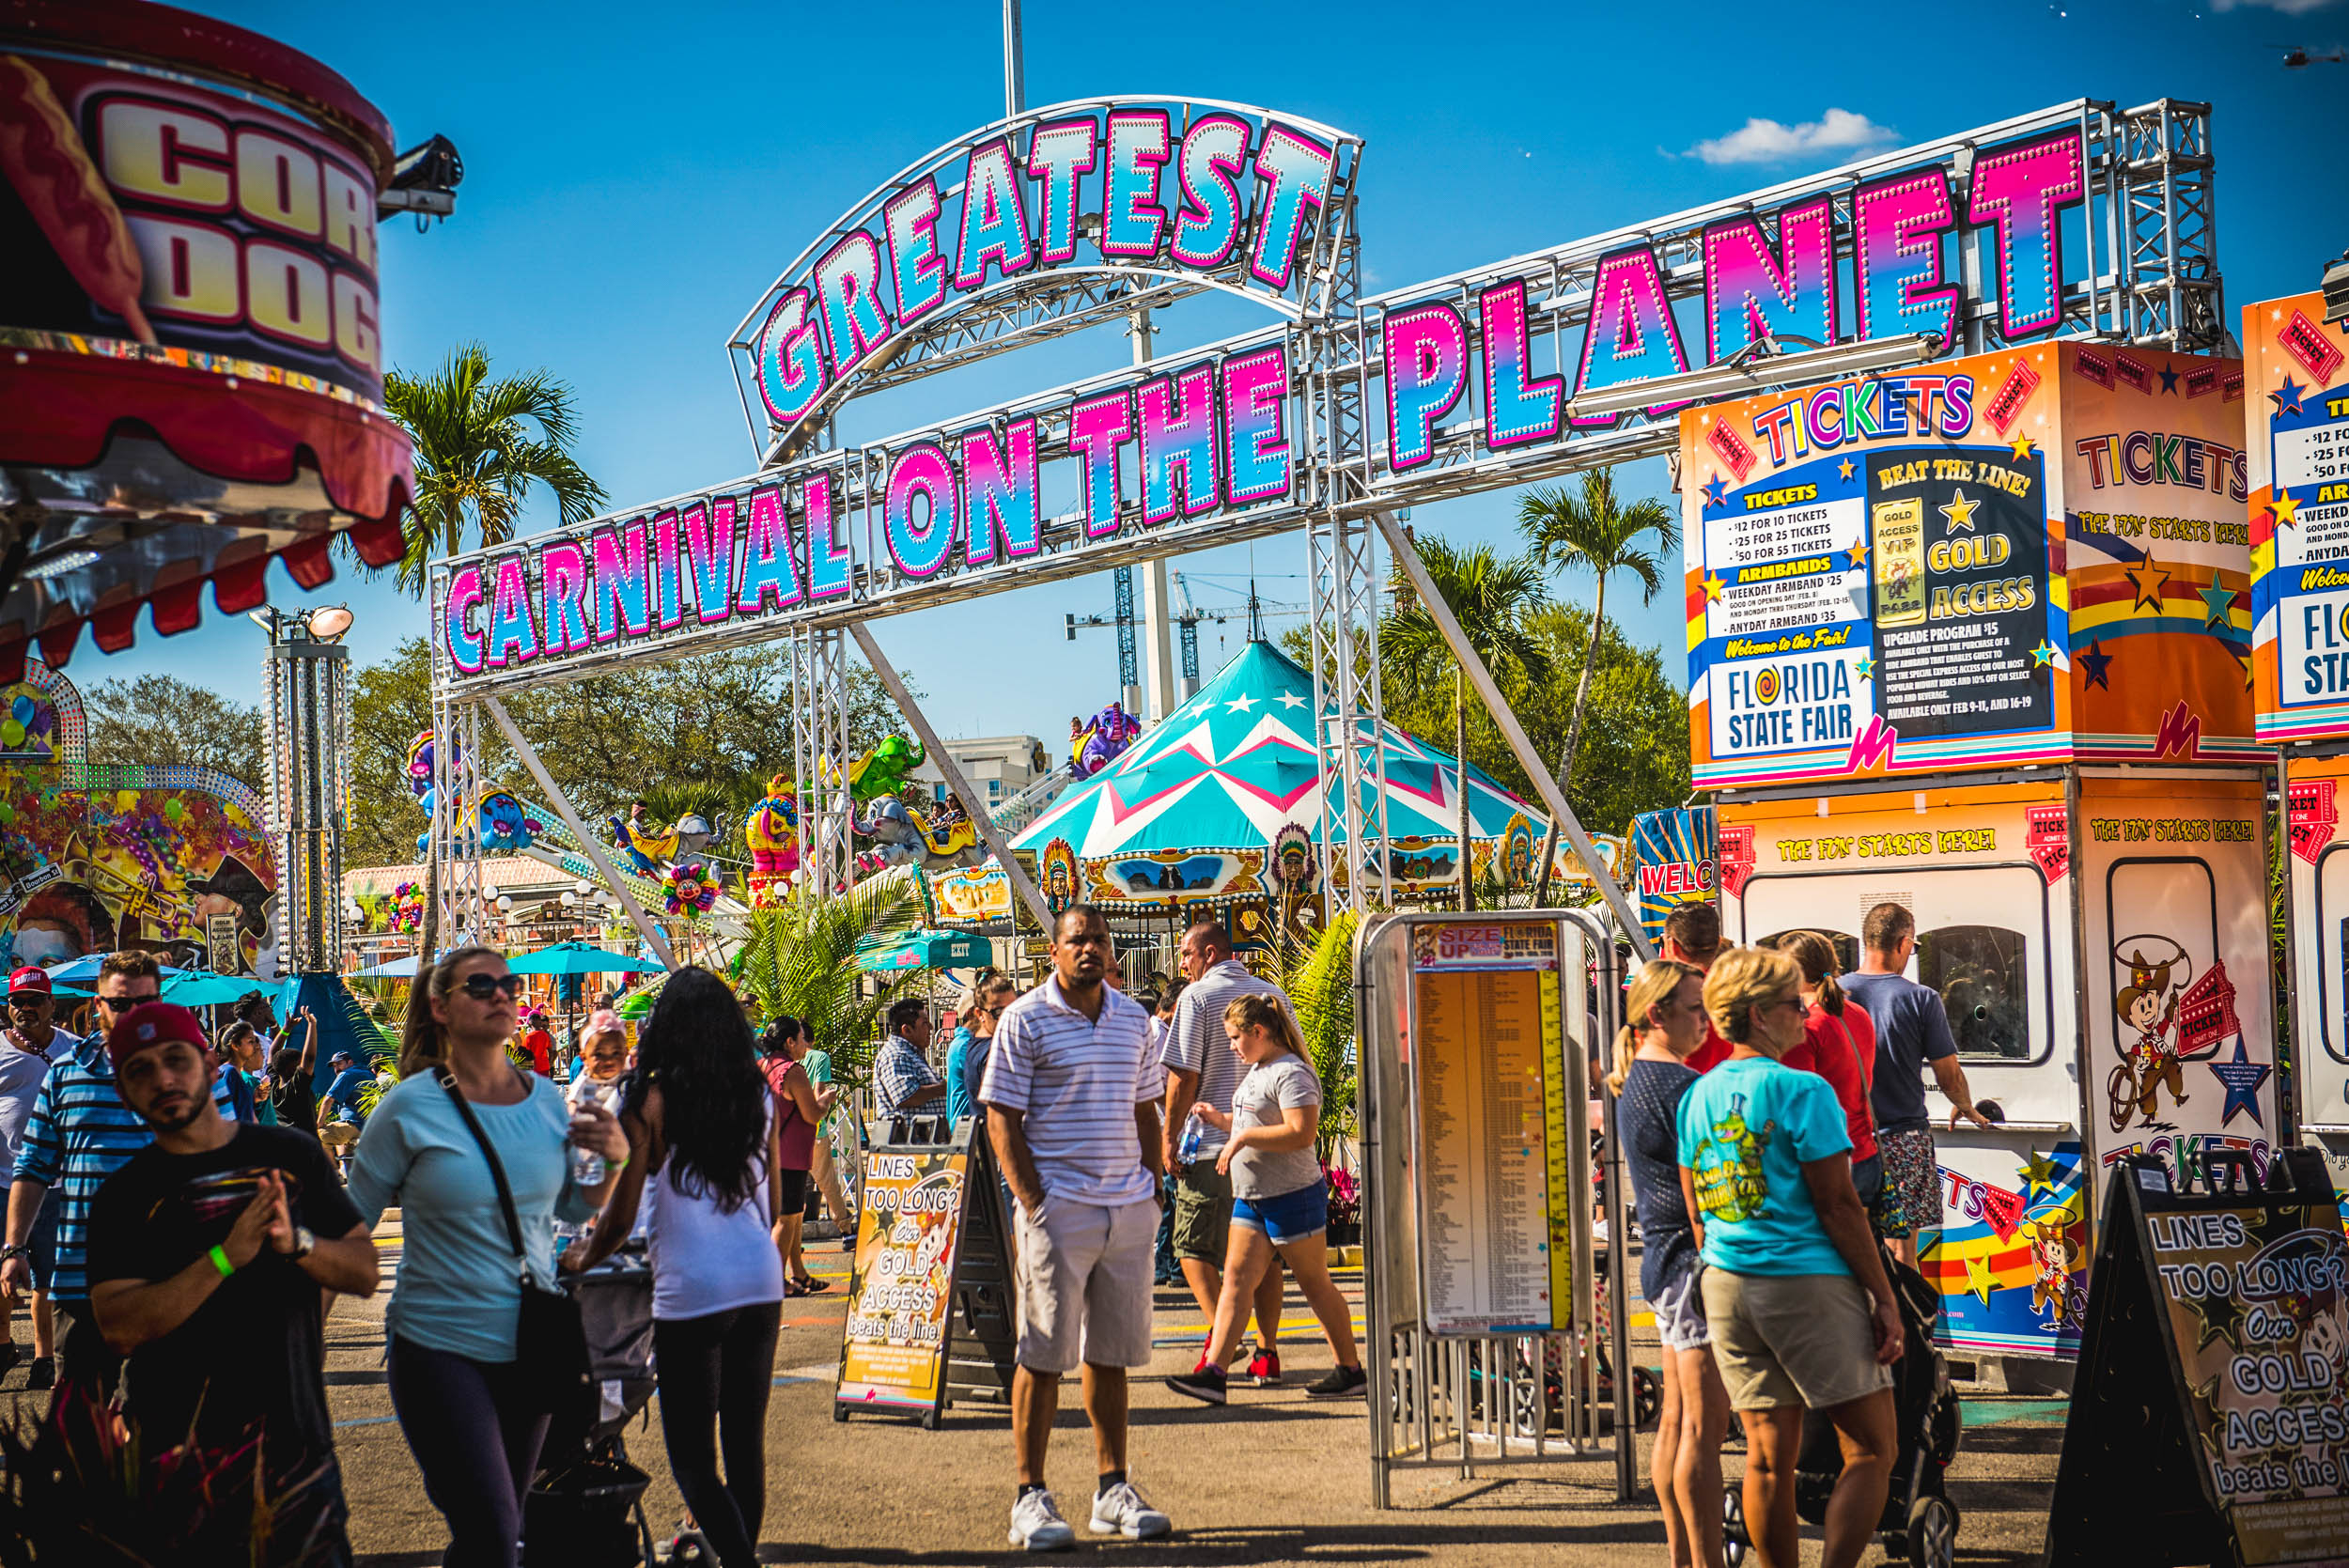 Visit Year Round - Florida State Fairgrounds In Tampa, Florida intended for Florida State Fairgrounds Events